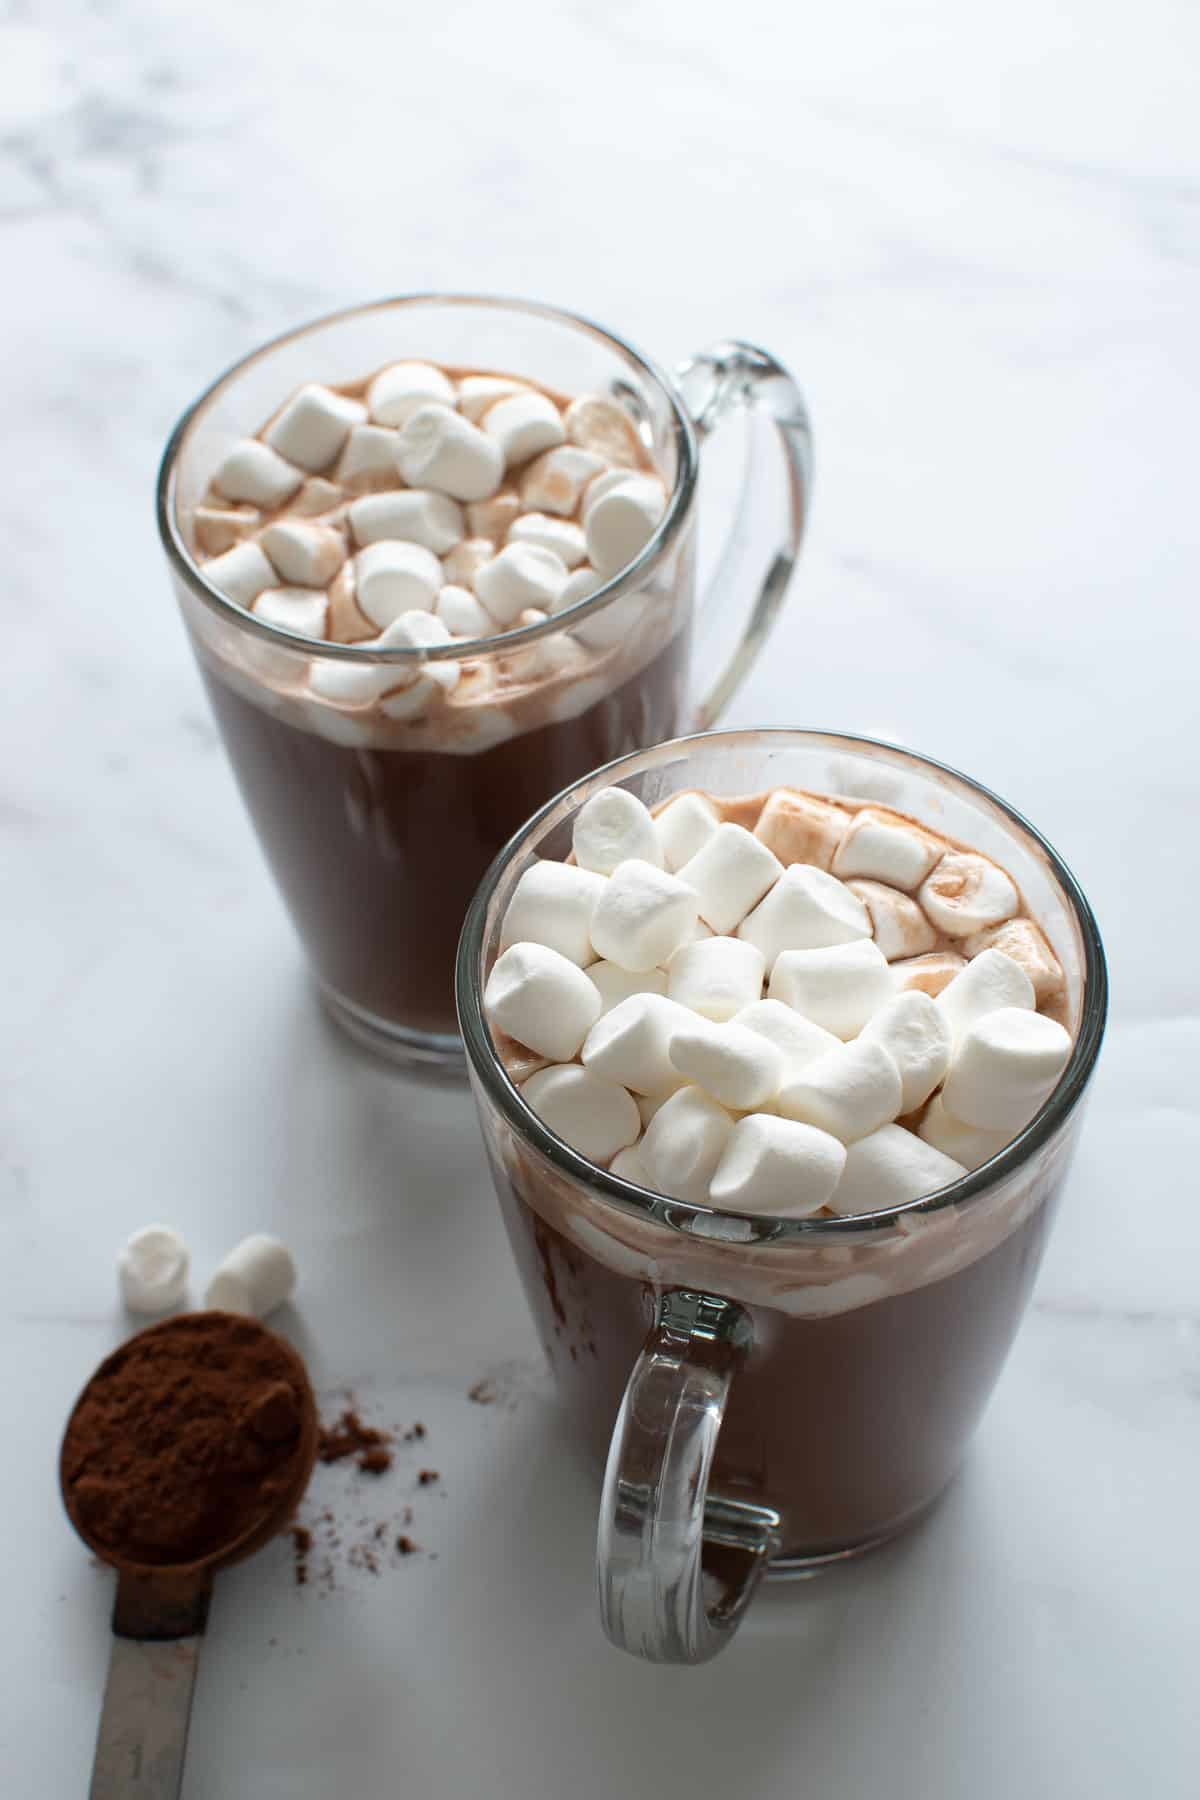 Two glasses of hot chocolate with marshmallows.